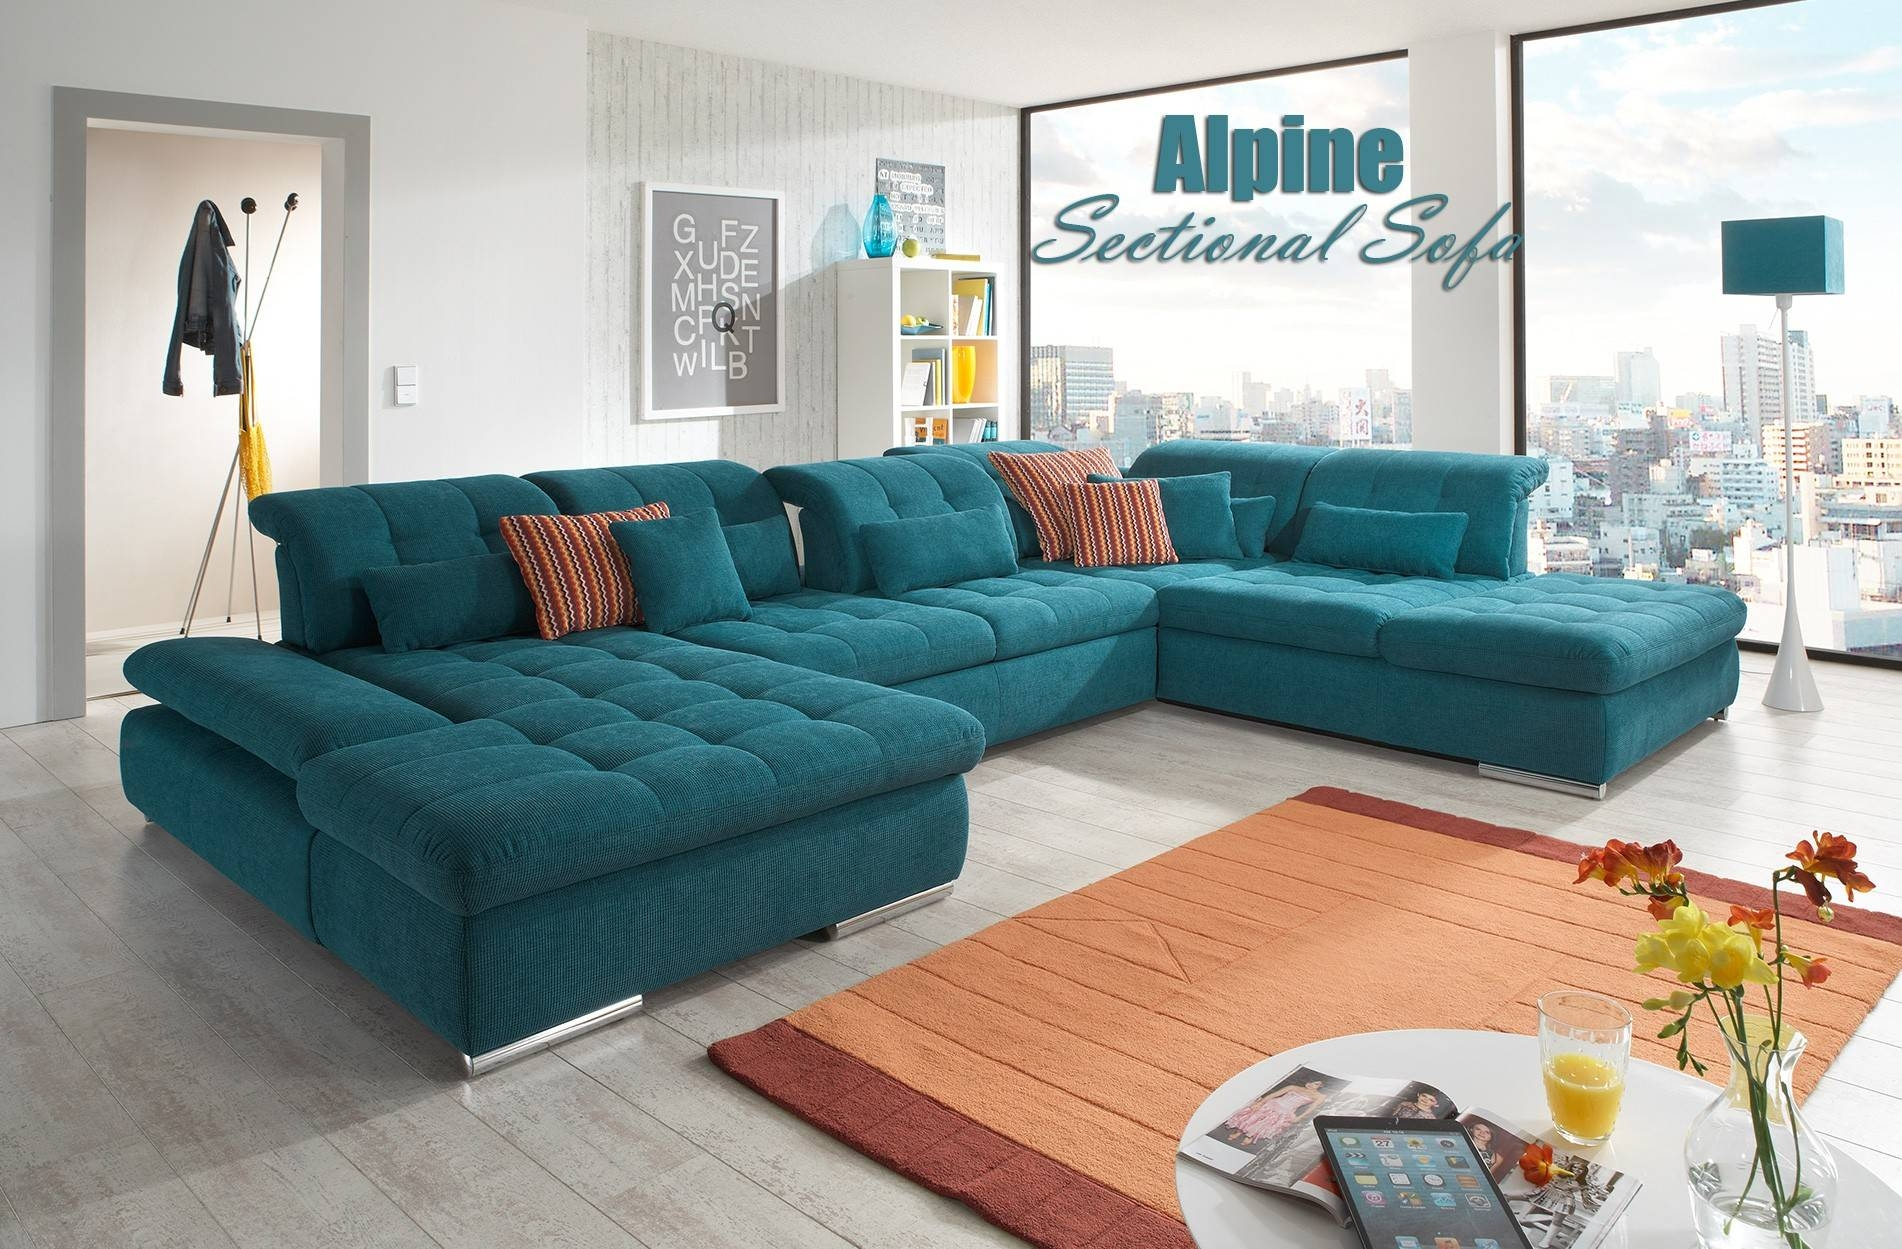 Alpine Sectional Sofa In Green Fabric regarding Green Sectional Sofa (Image 5 of 30)